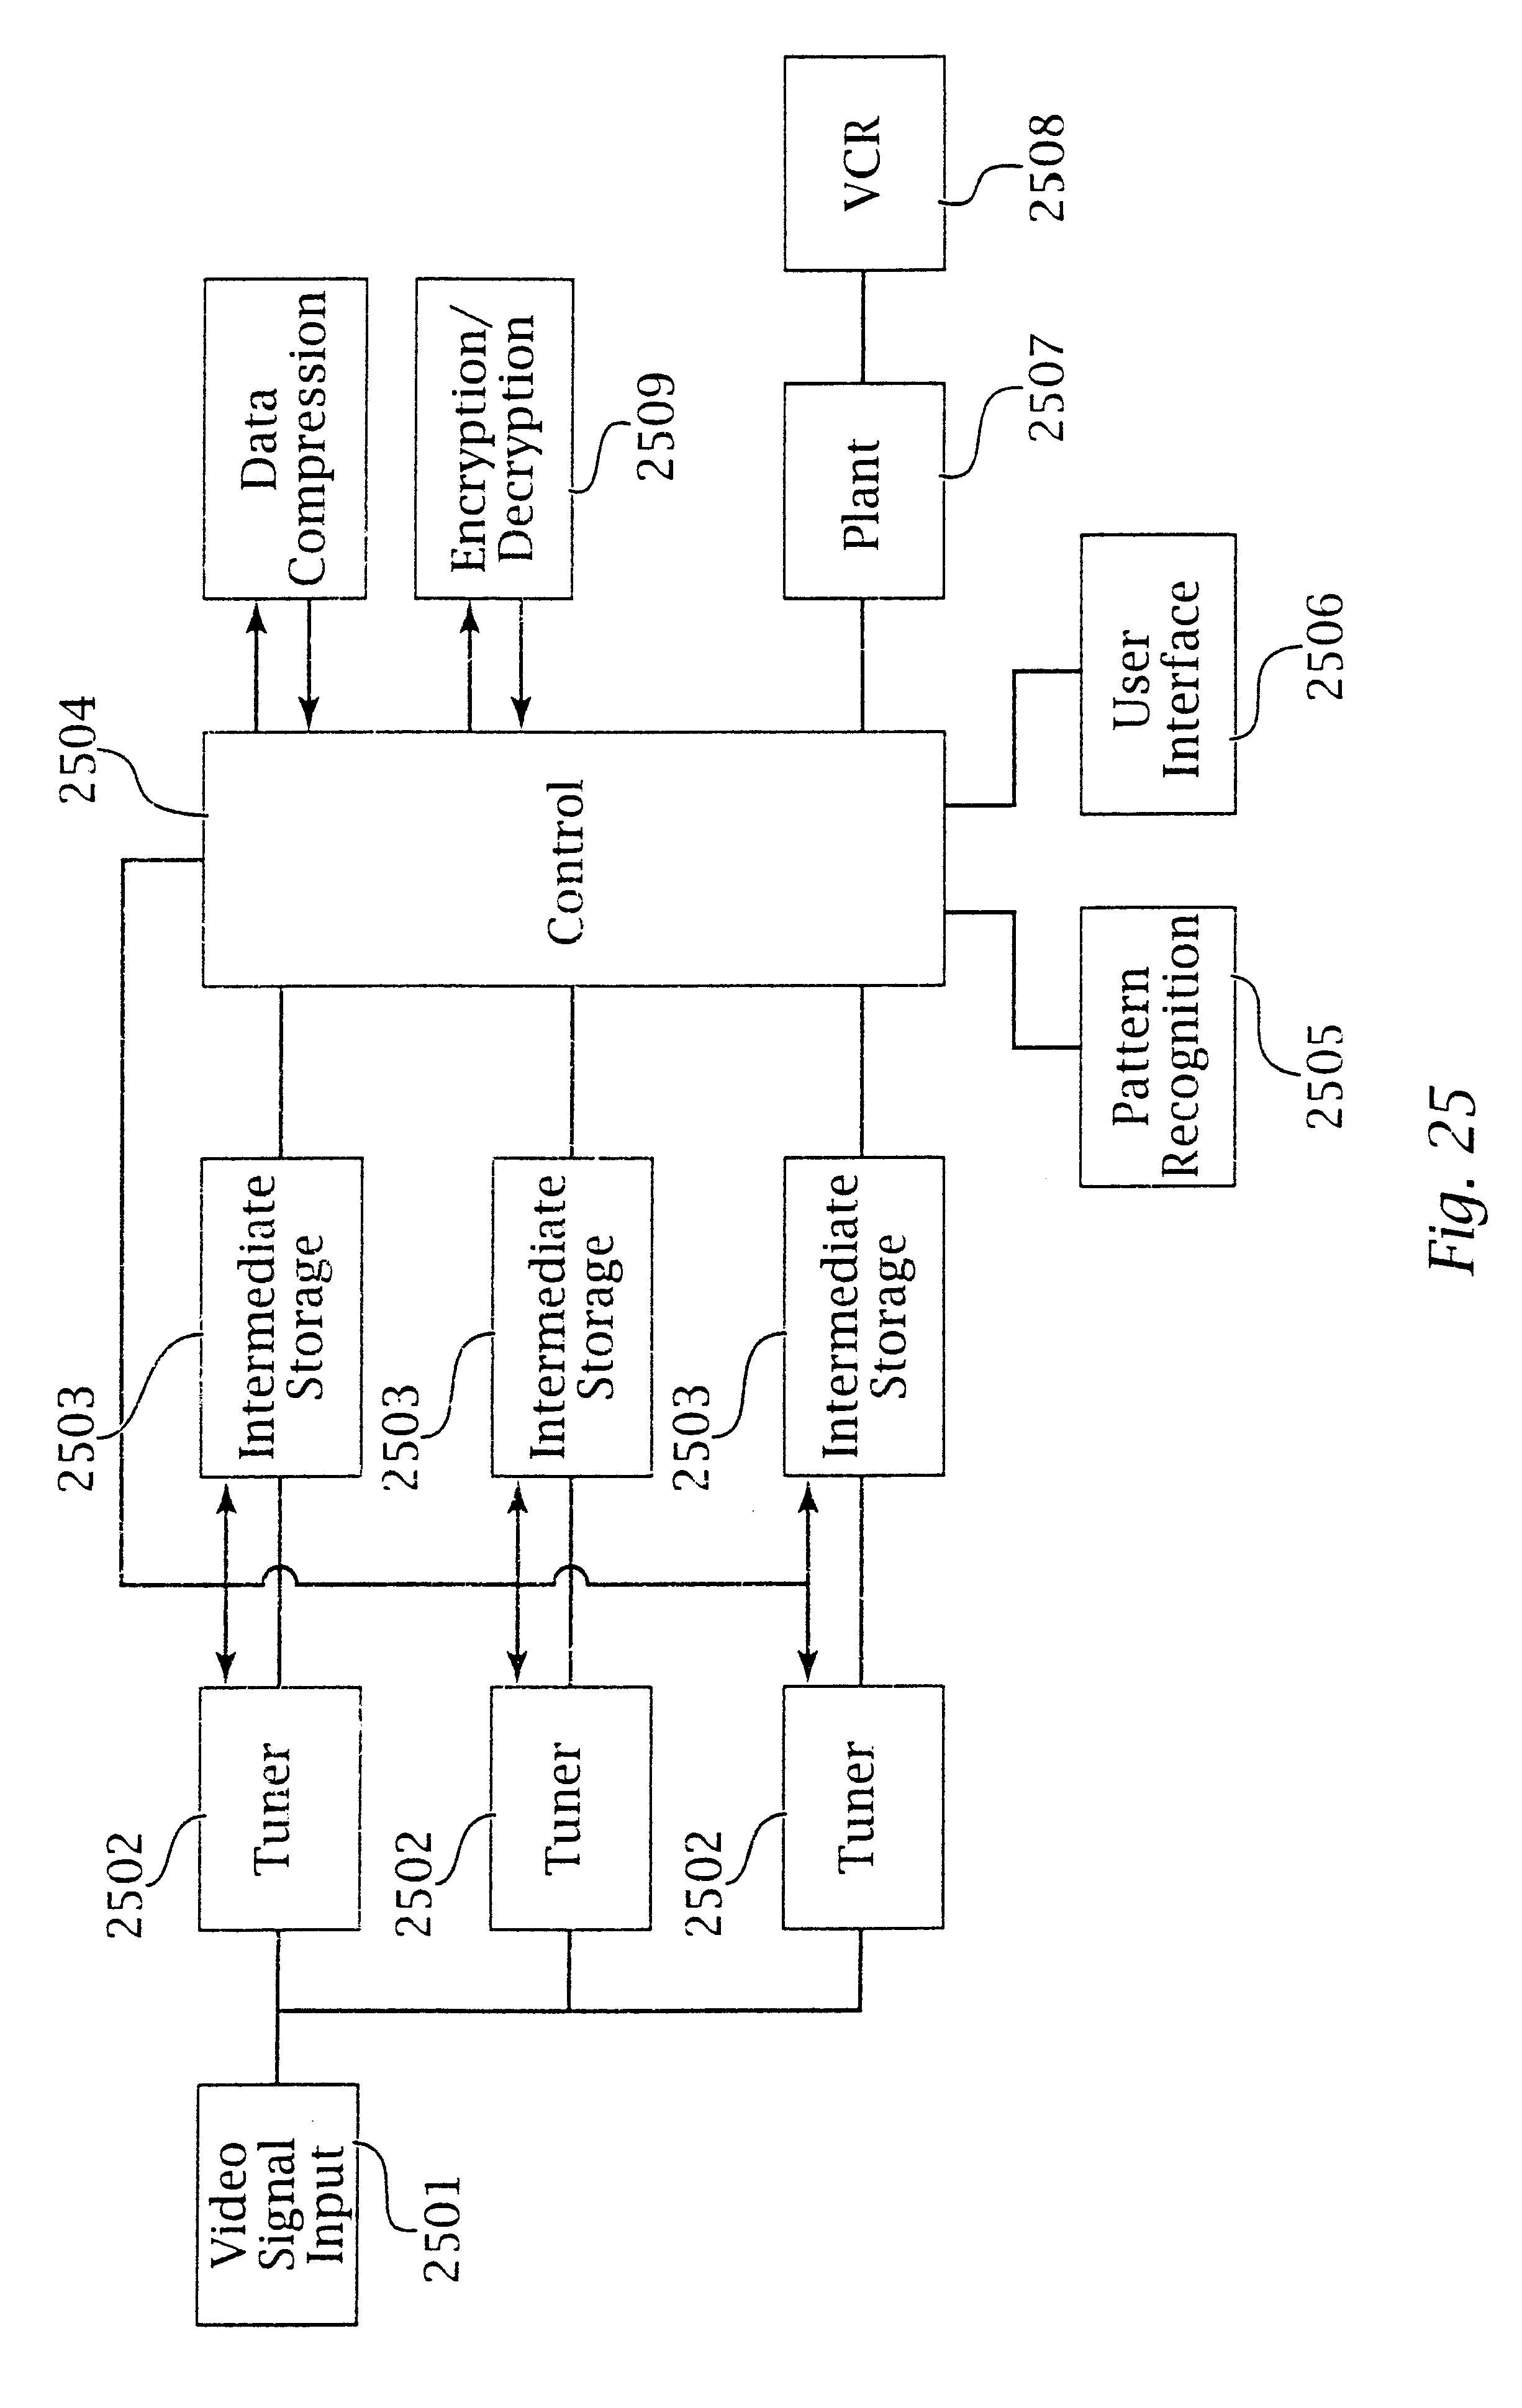 Patent Us 6640145 B2 Ua741 Op Amp Diagram As Well Circuits Ex Les Problems 0 Petitions